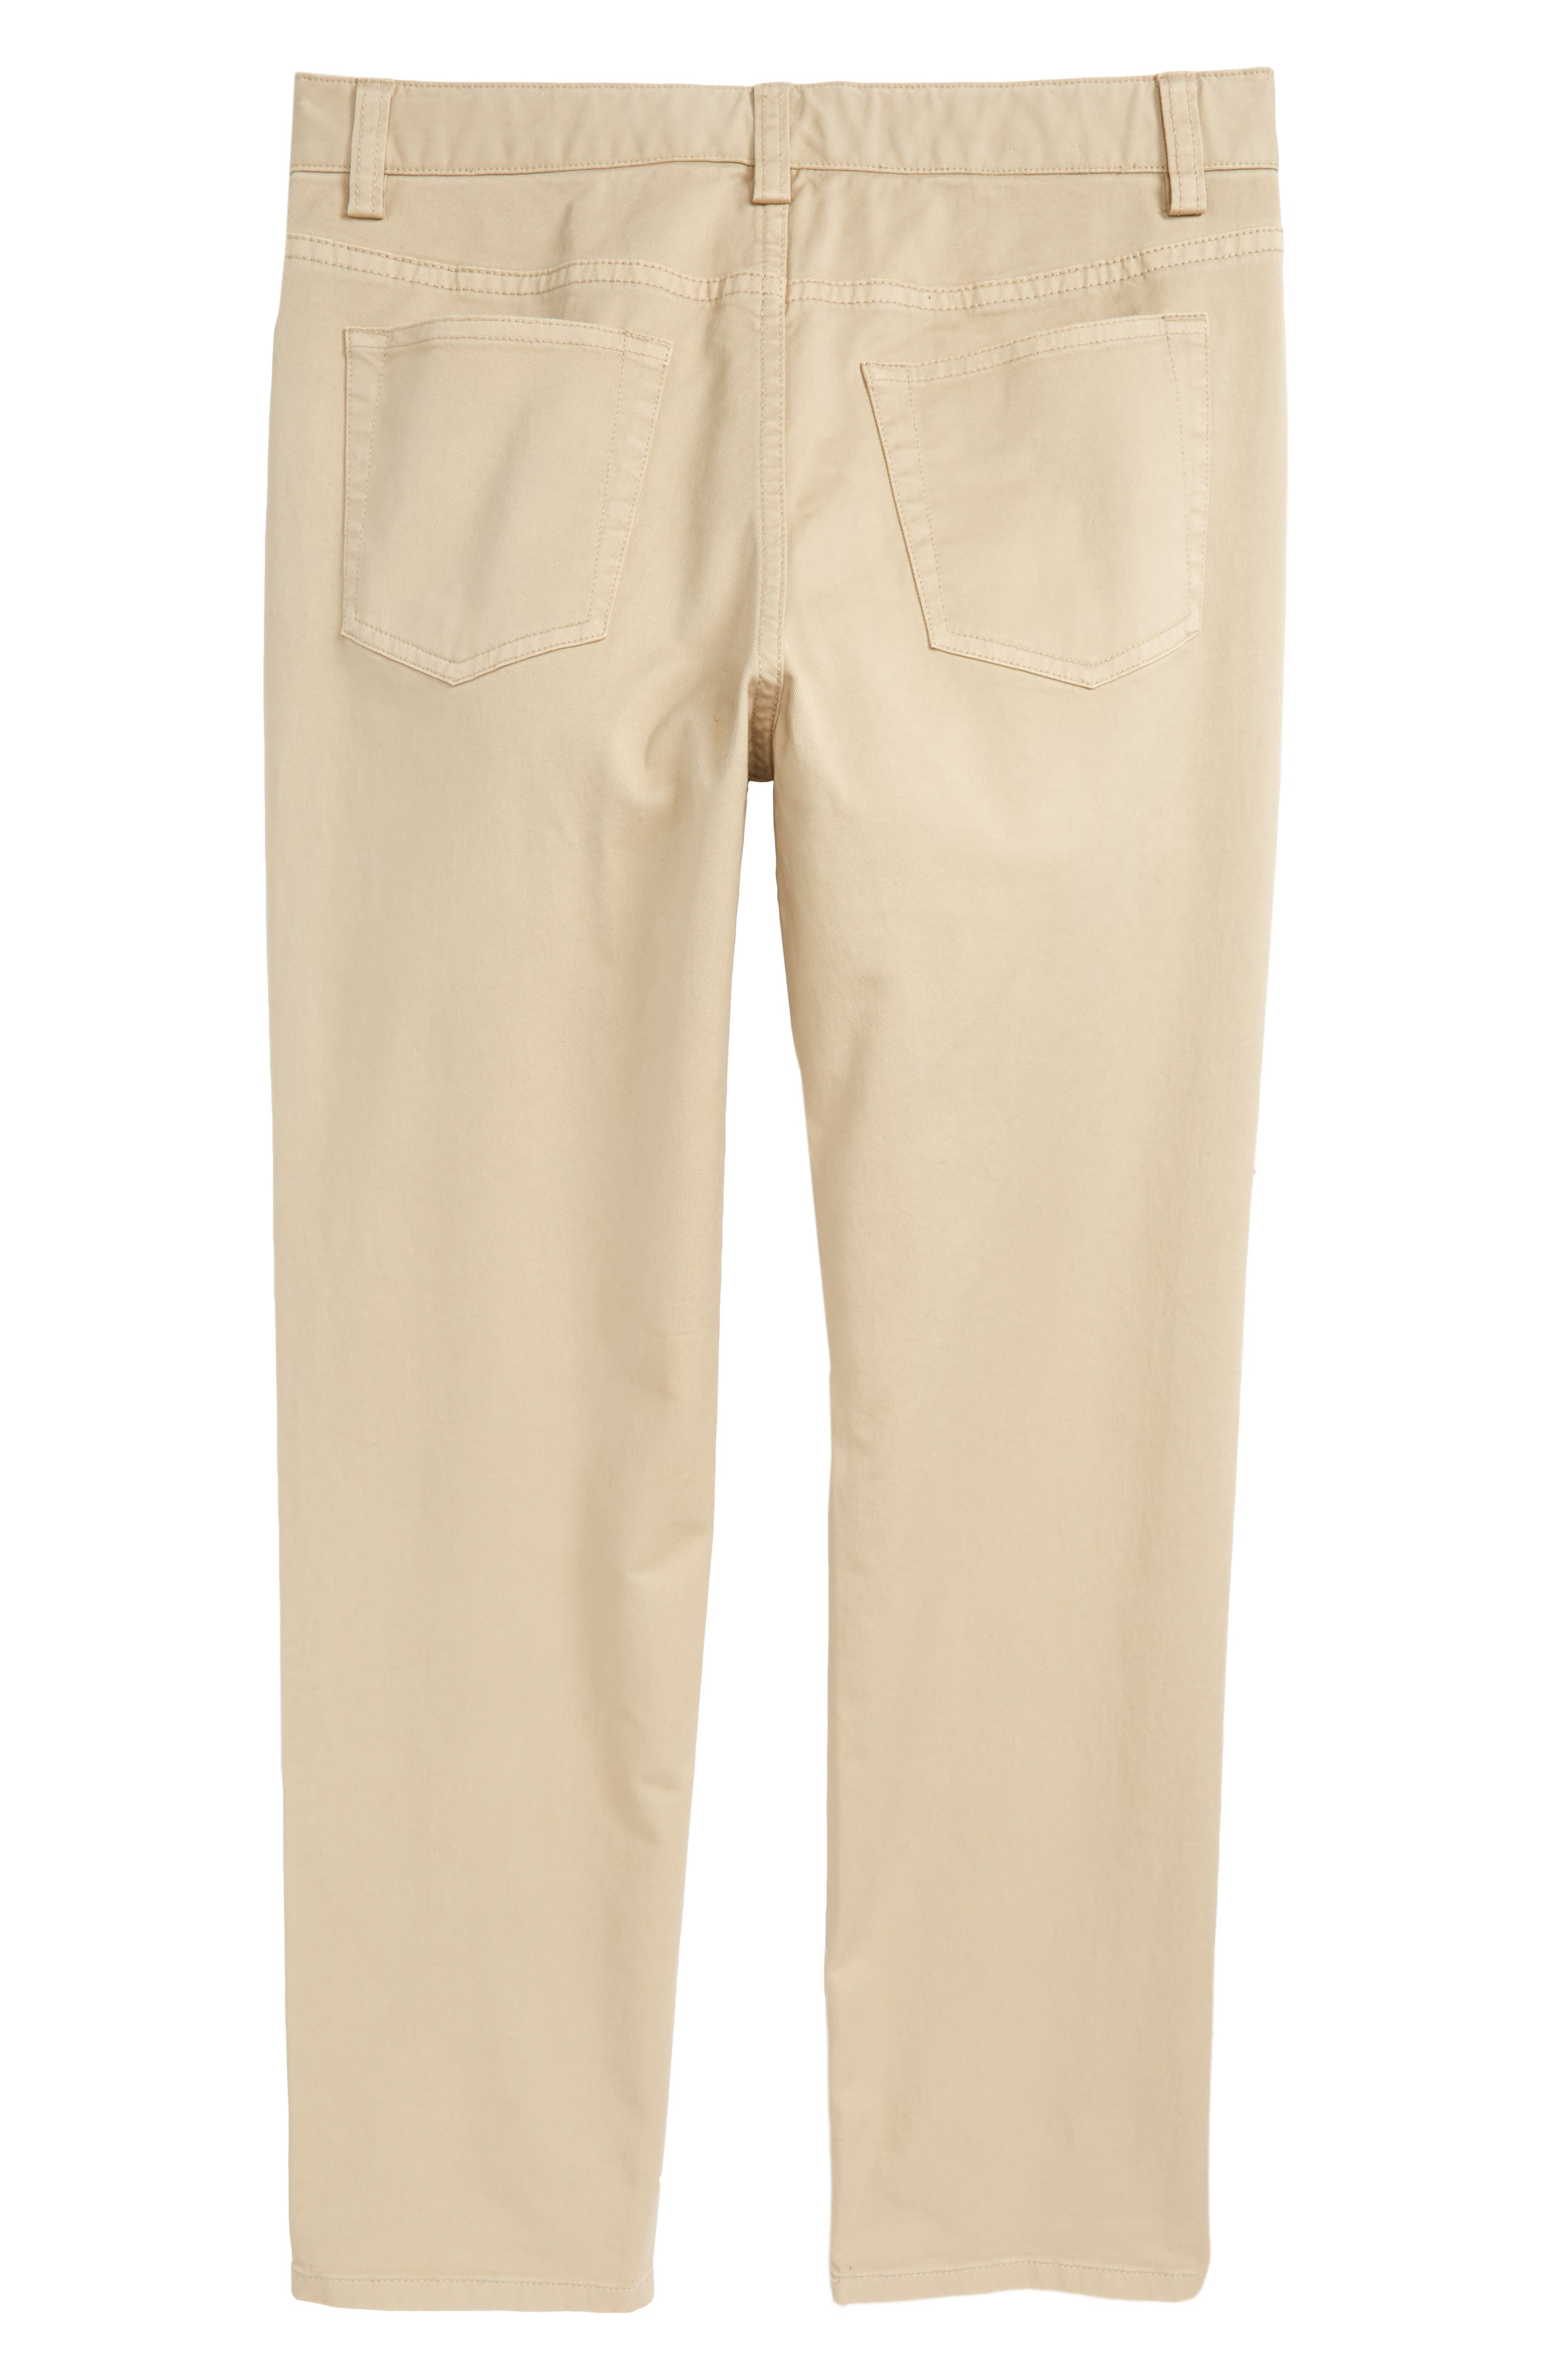 Stretch Twill Pants,                             Alternate thumbnail 2, color,                             250